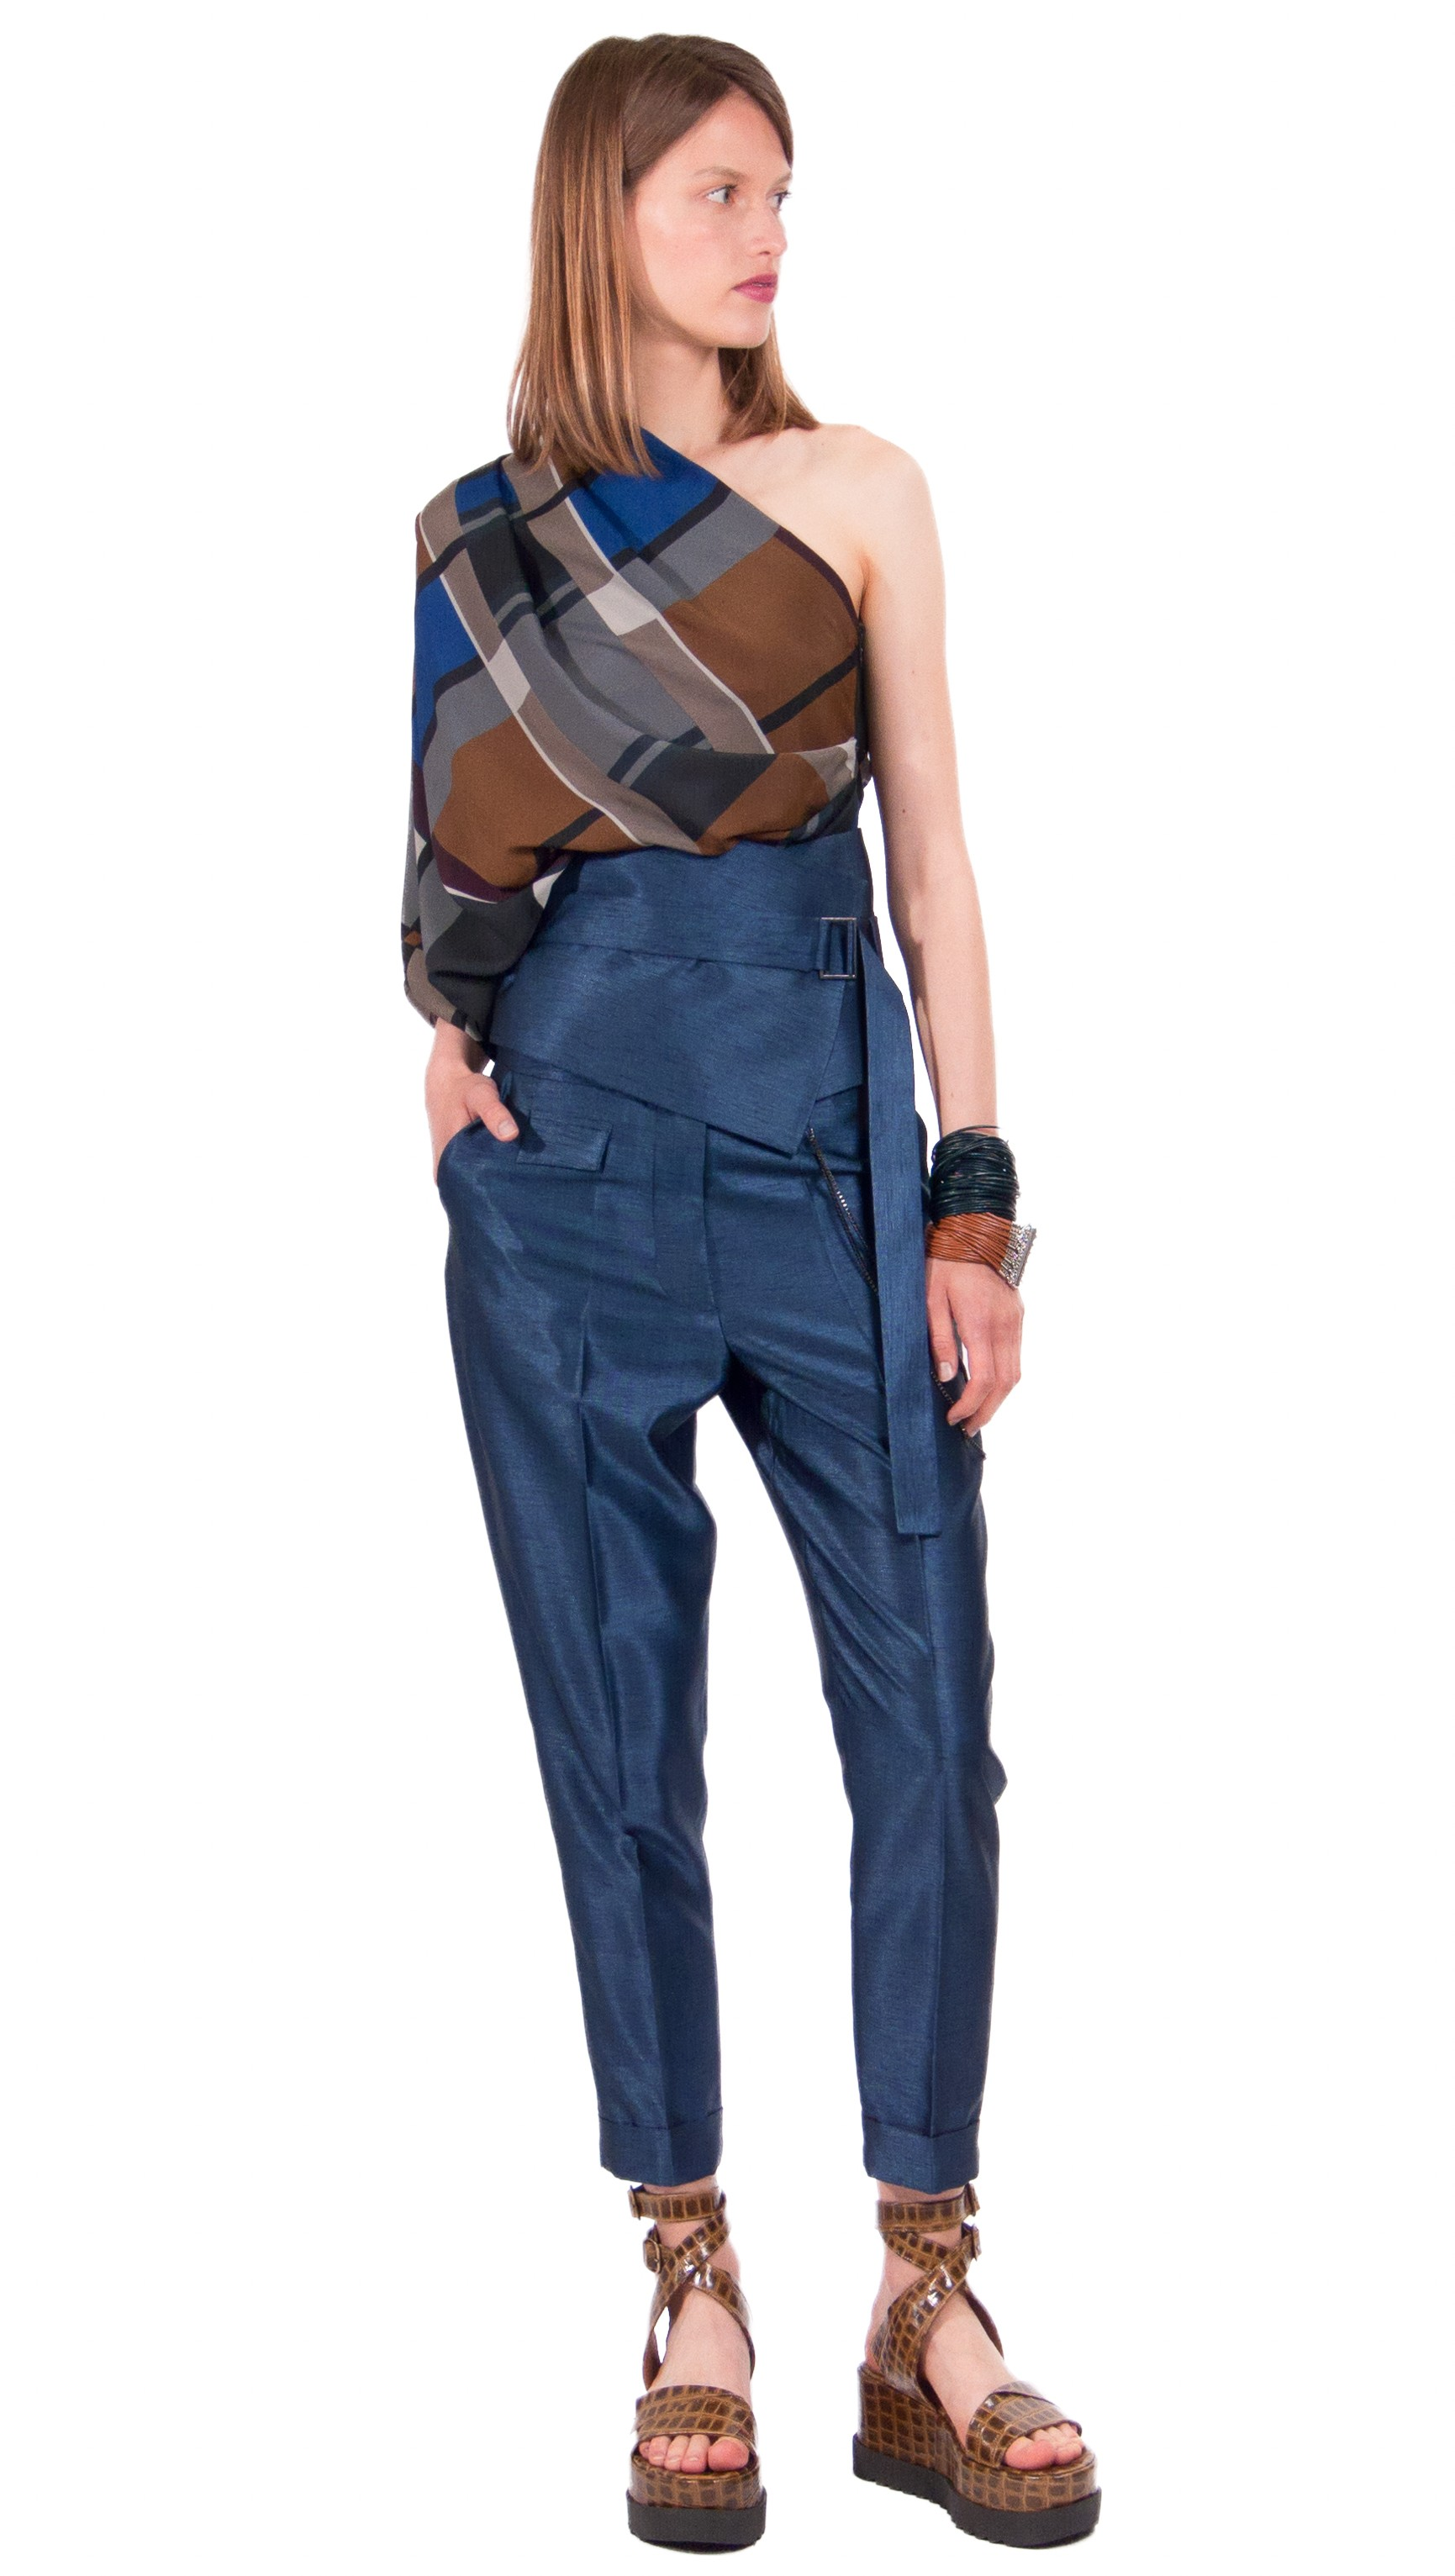 JSP PANTS WITH BELT